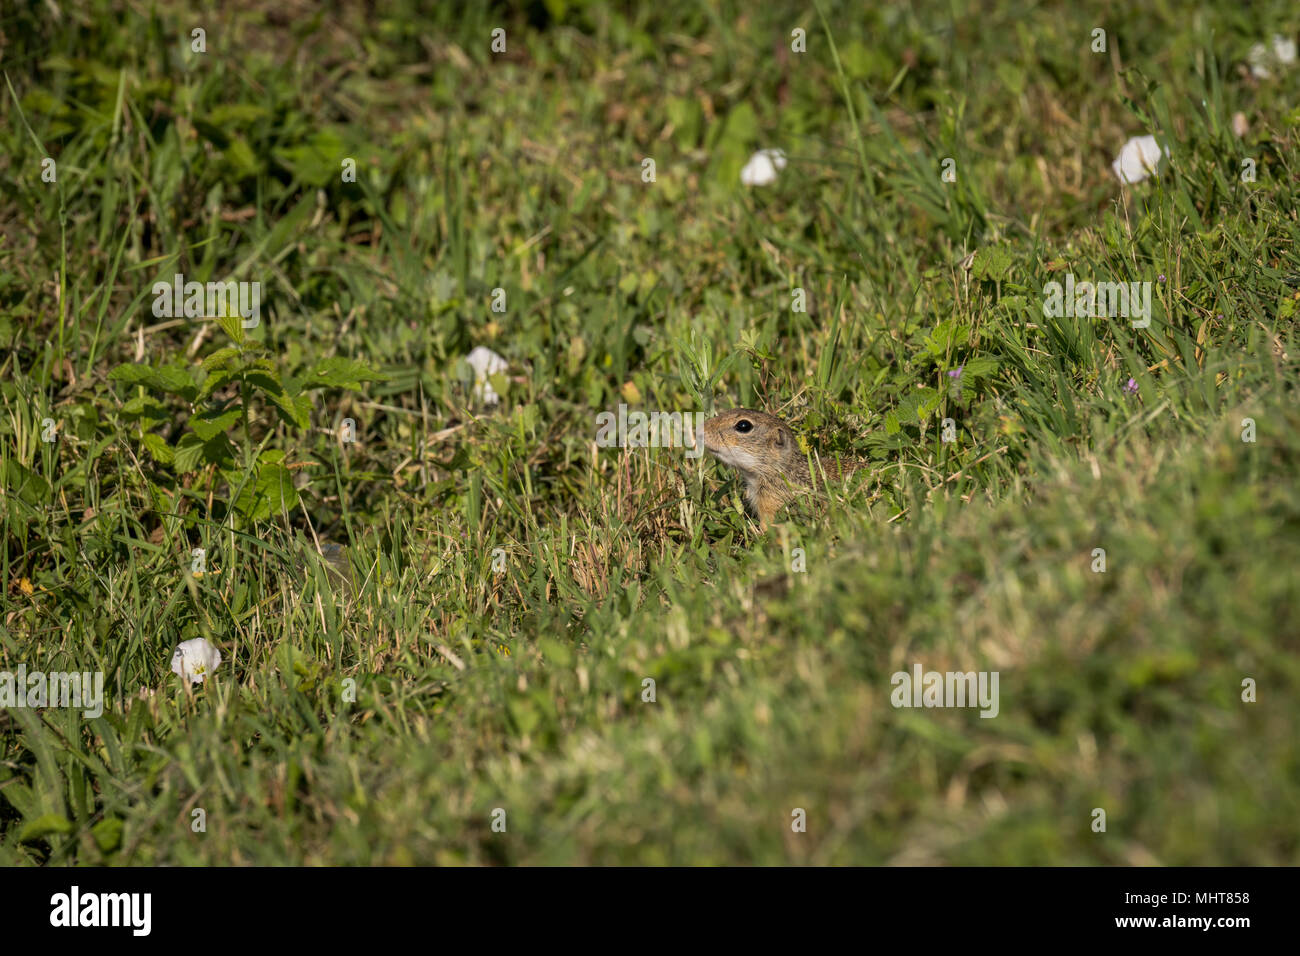 European Ground Squirrel in search of the food, a curious little animal. Is listed as being Vulnerable by the IUCN. - Stock Image